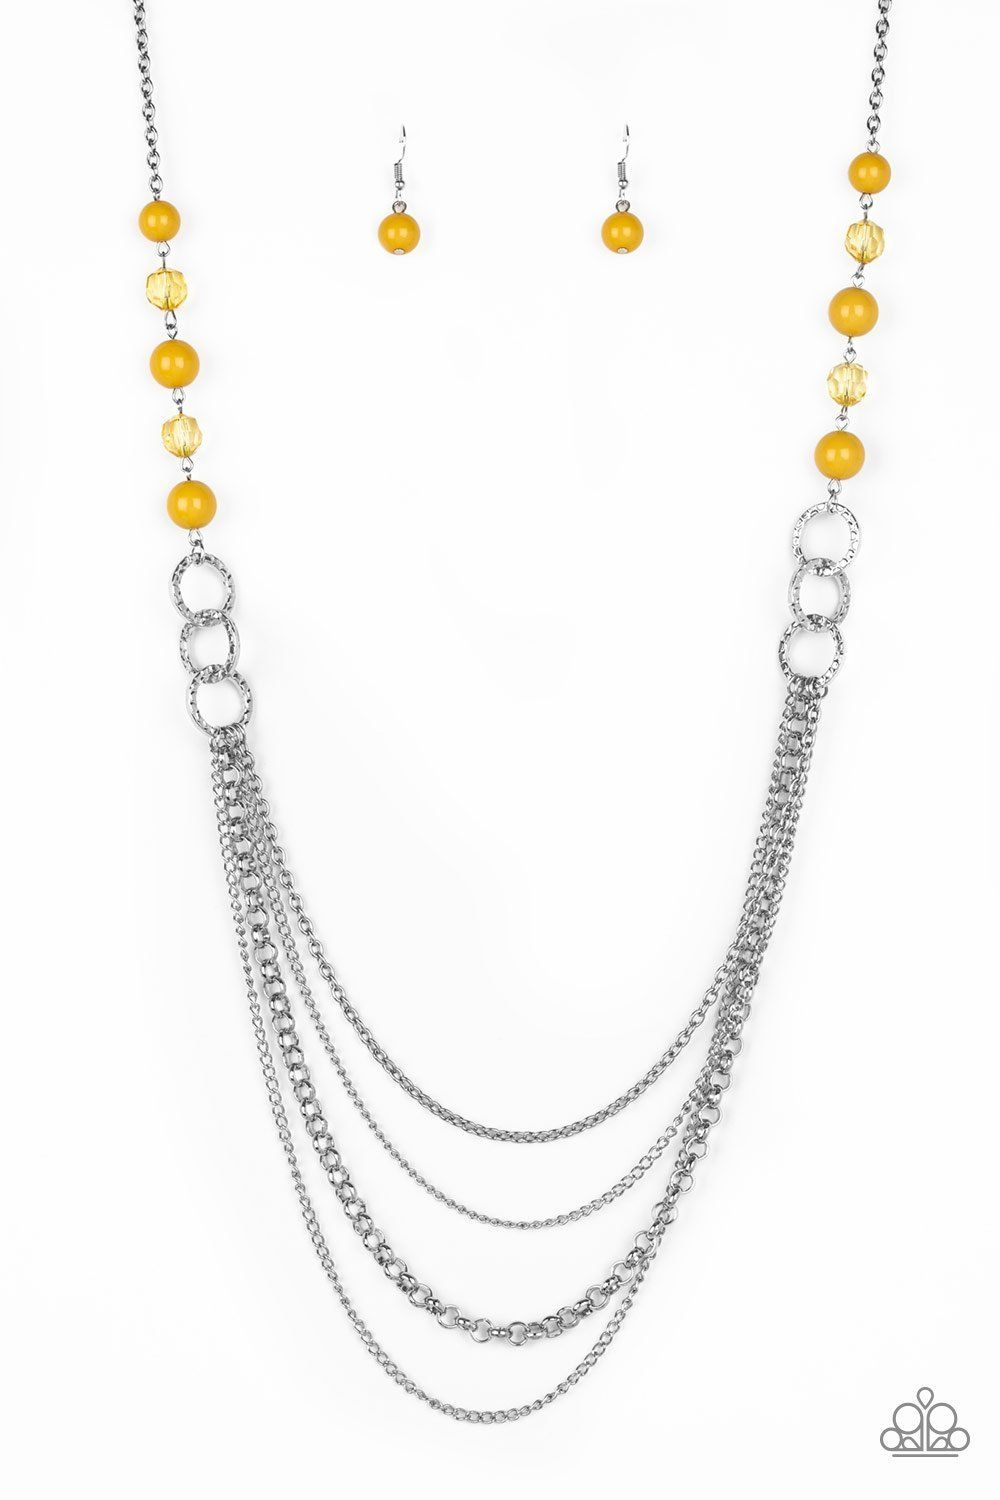 Vividly Vivid Yellow Necklace Yellow necklace, Beaded